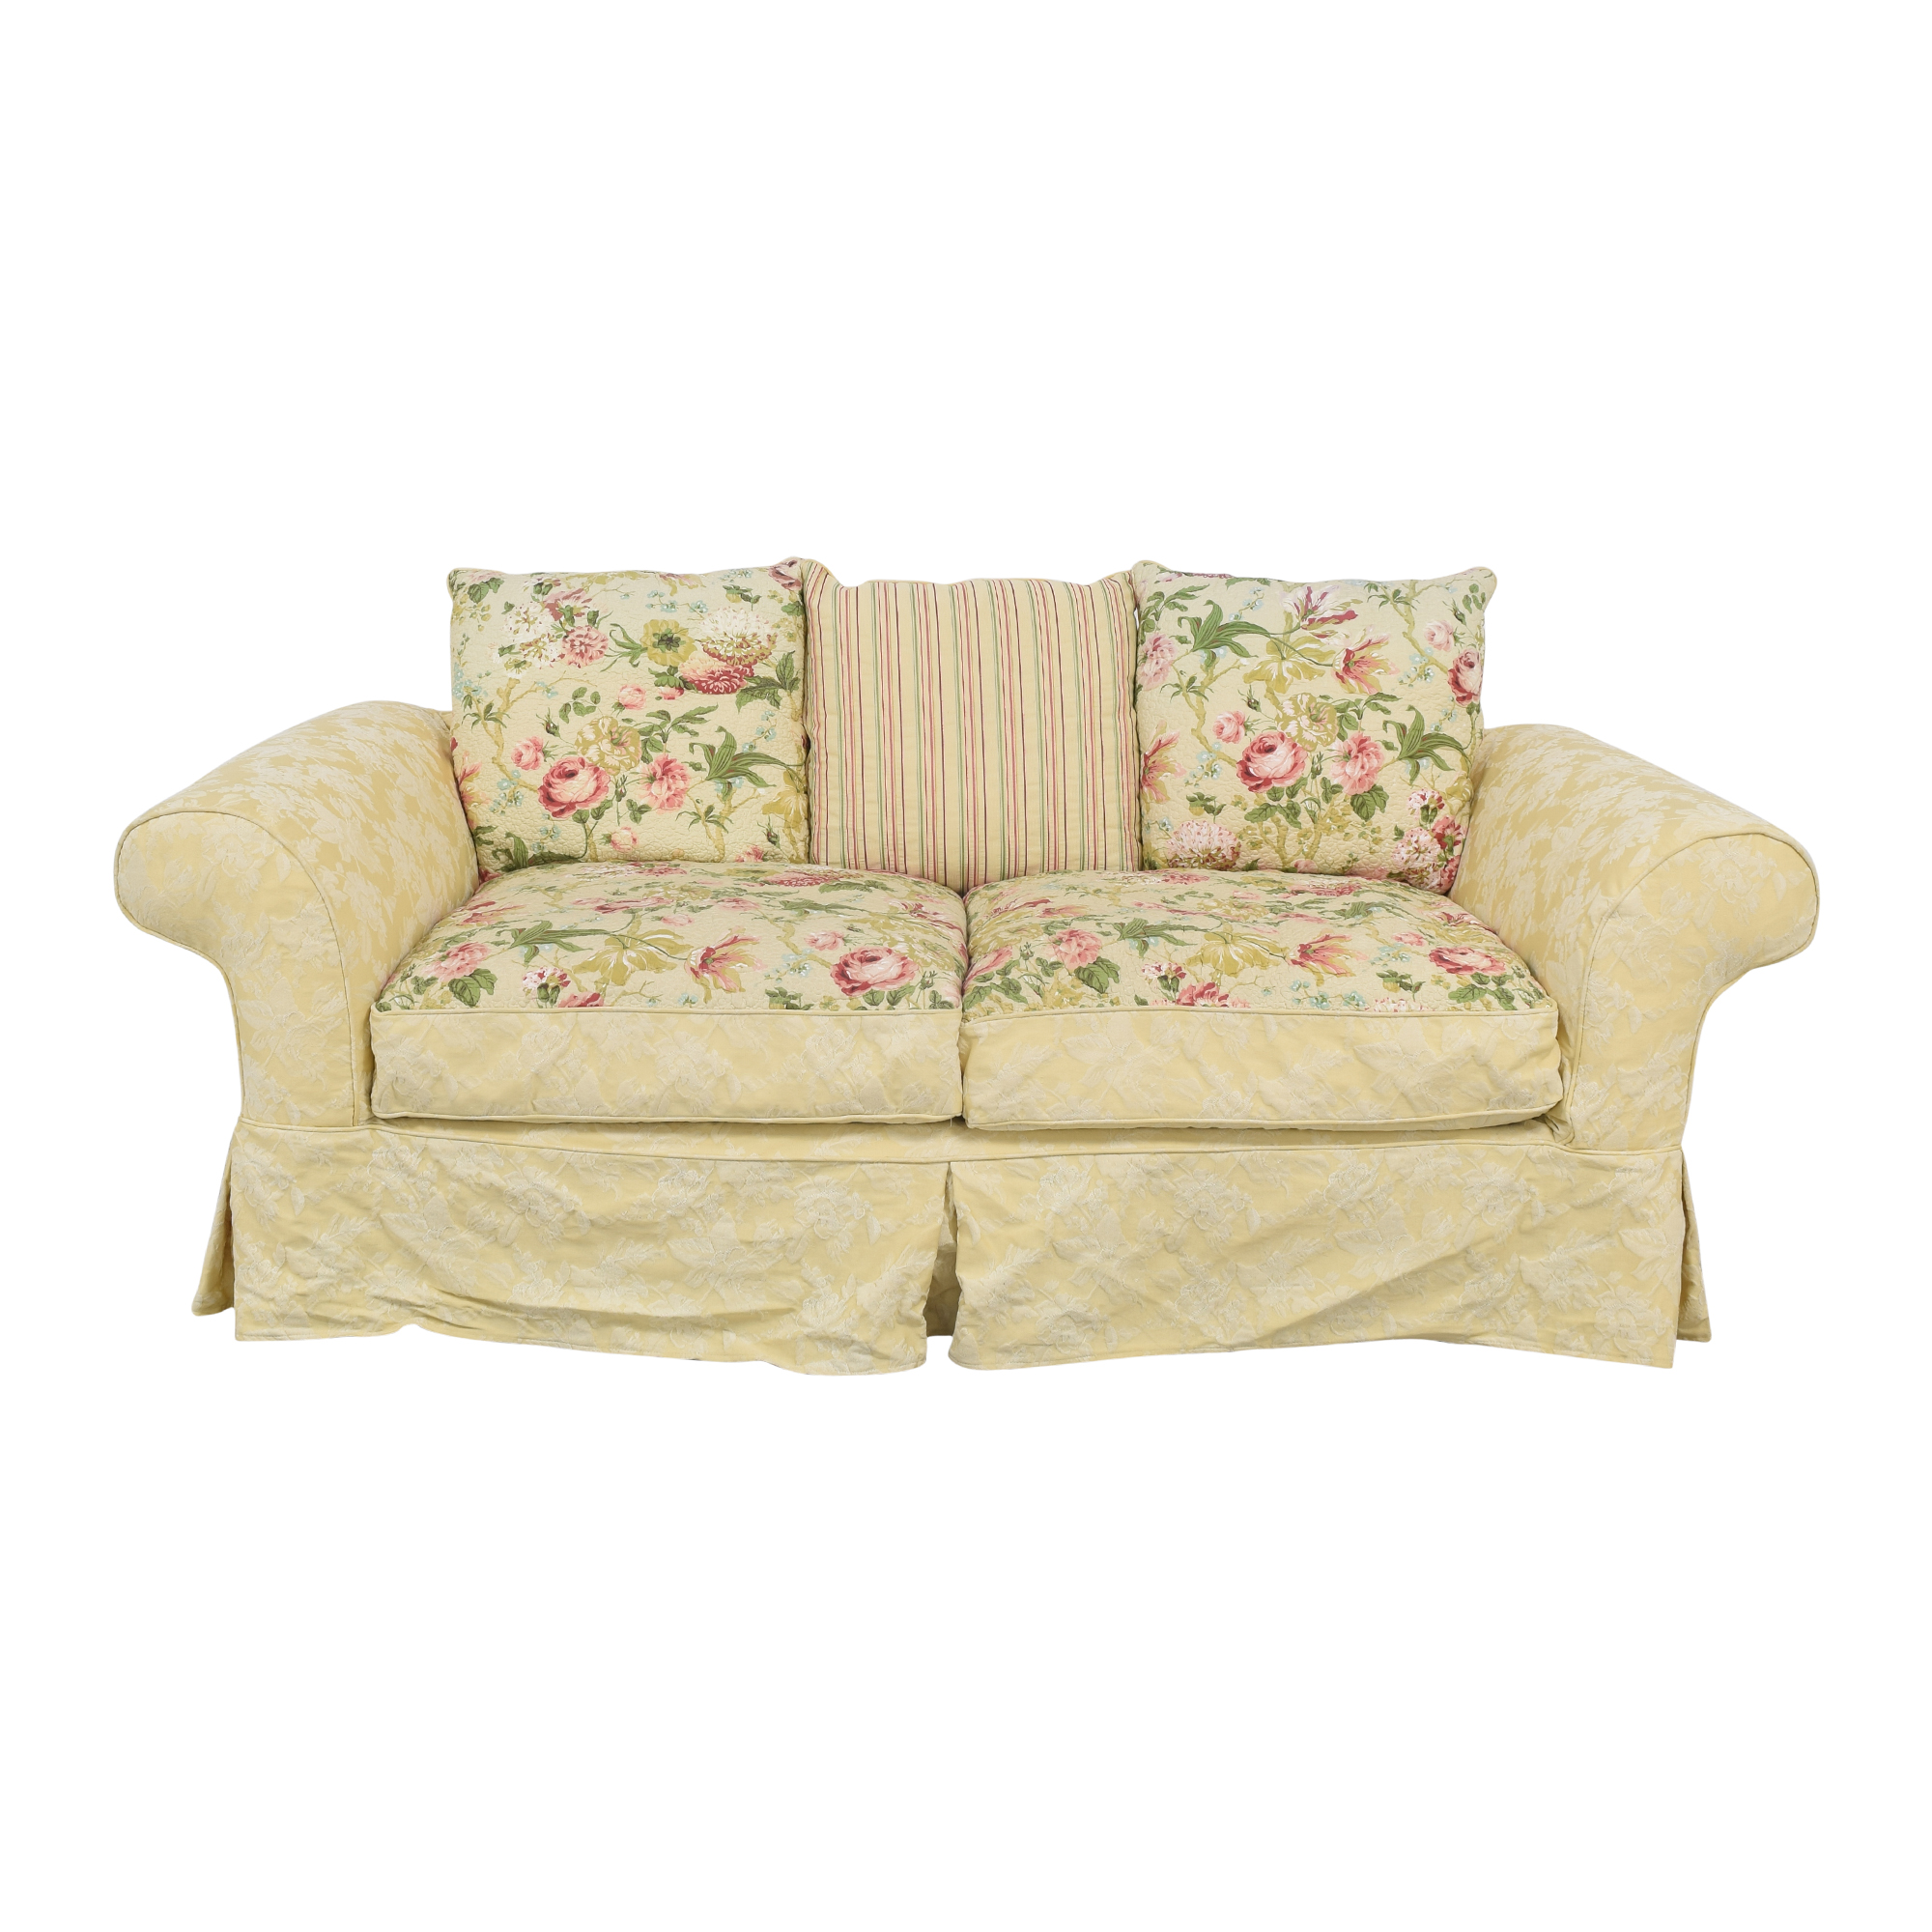 Domain Domain Multi-Patterned Sofa ma